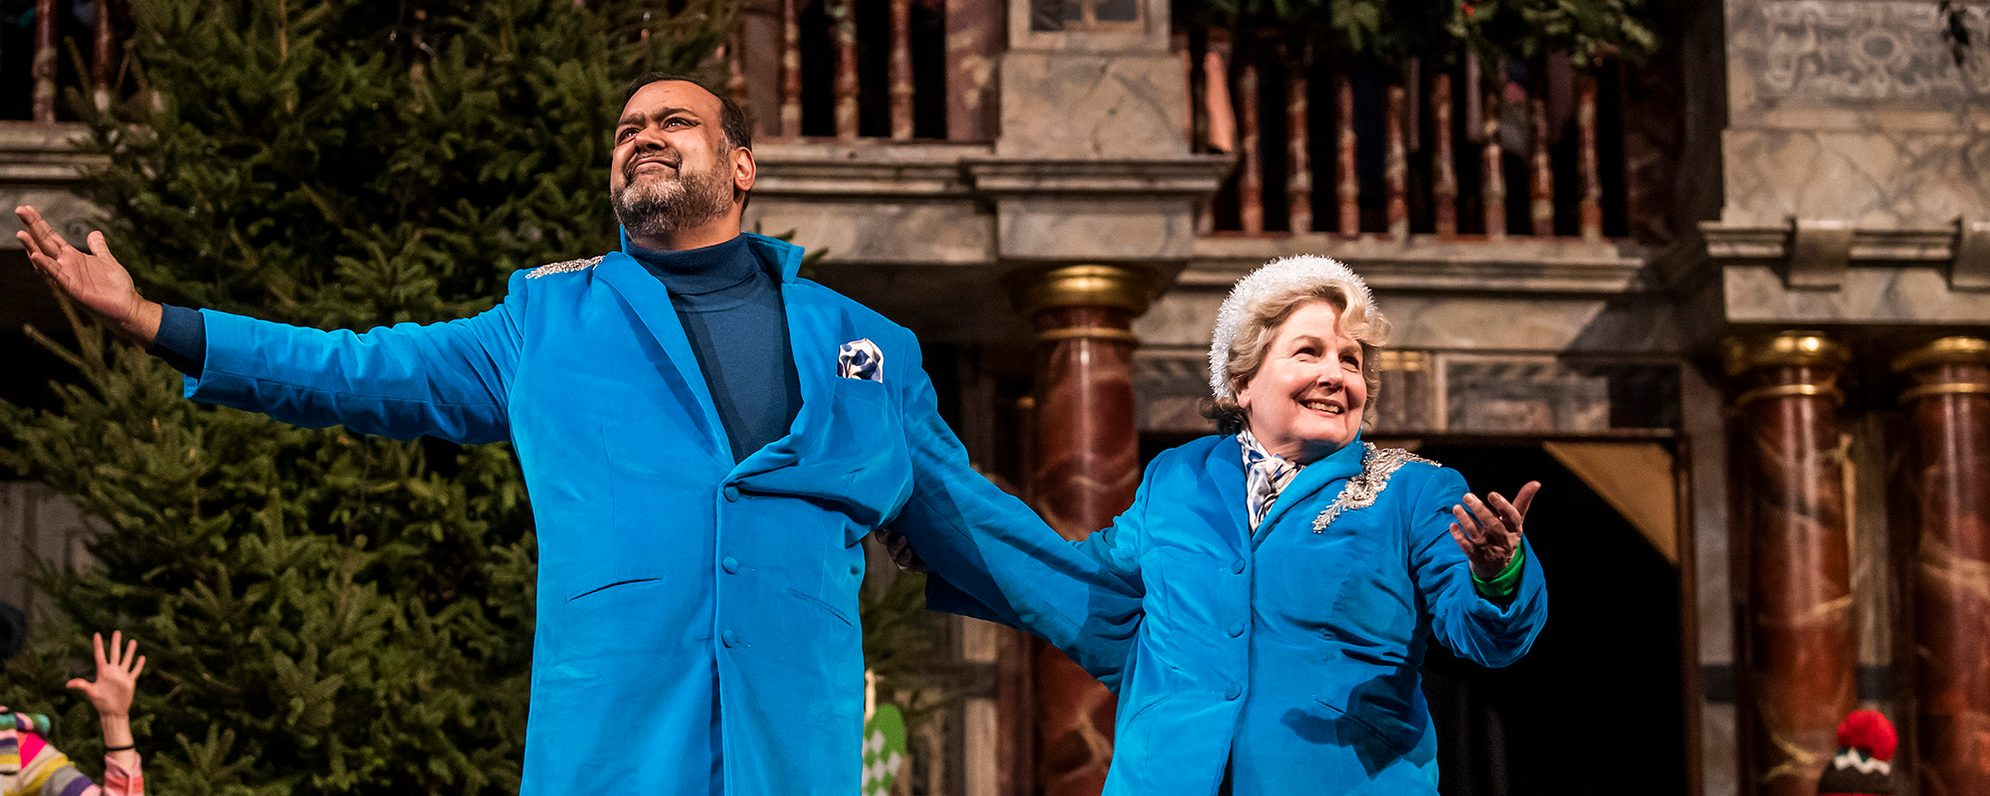 A male and female actor, wearing matching blue suits, stand onstage with their arms outstretched, smiling.